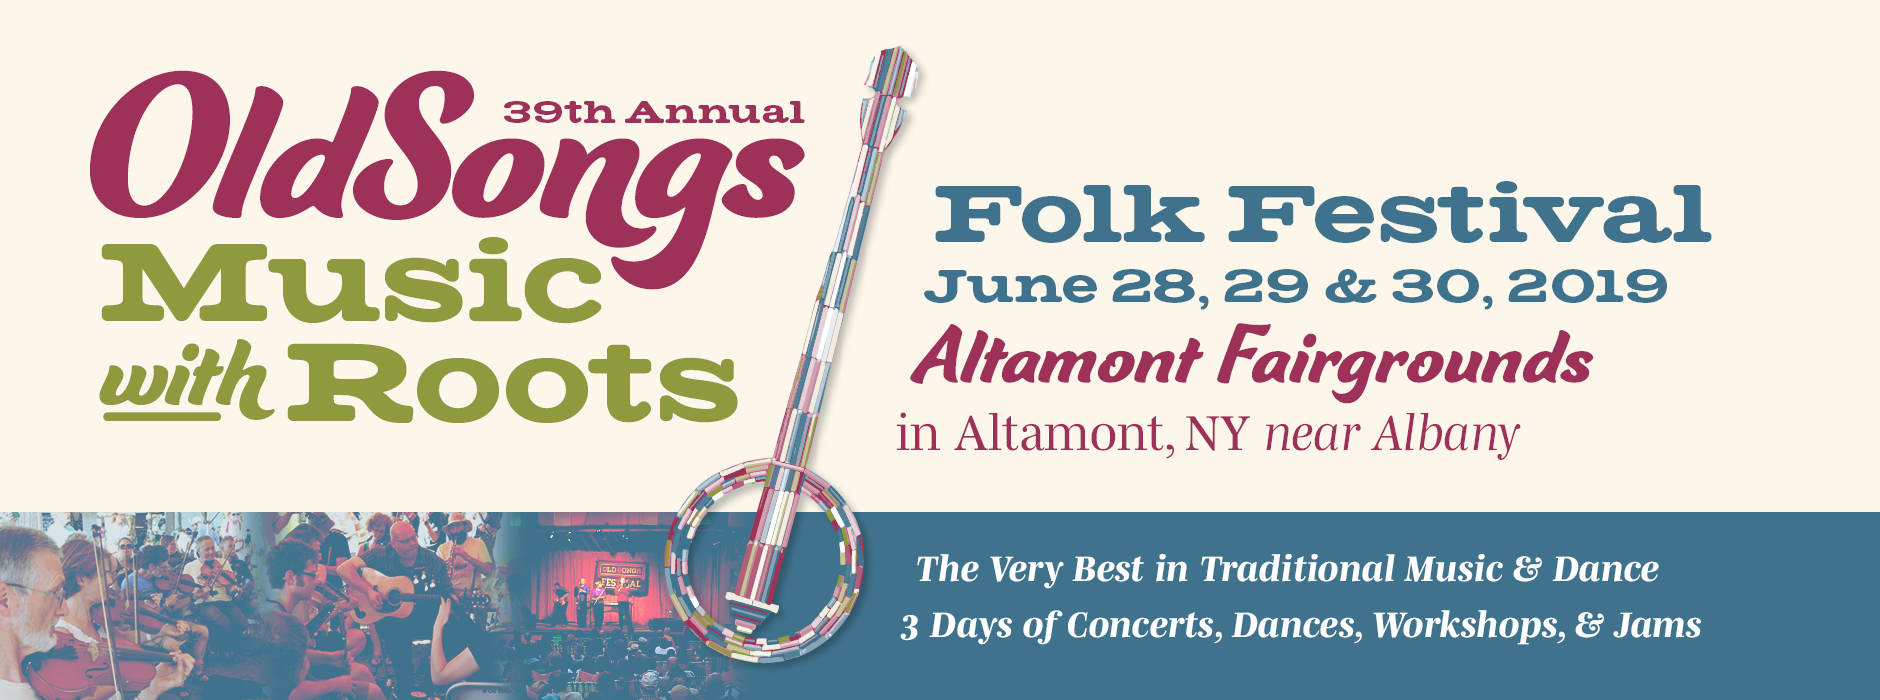 June 28, 28 & 30, 2019 at the Altamont Fairgrounds | 39th